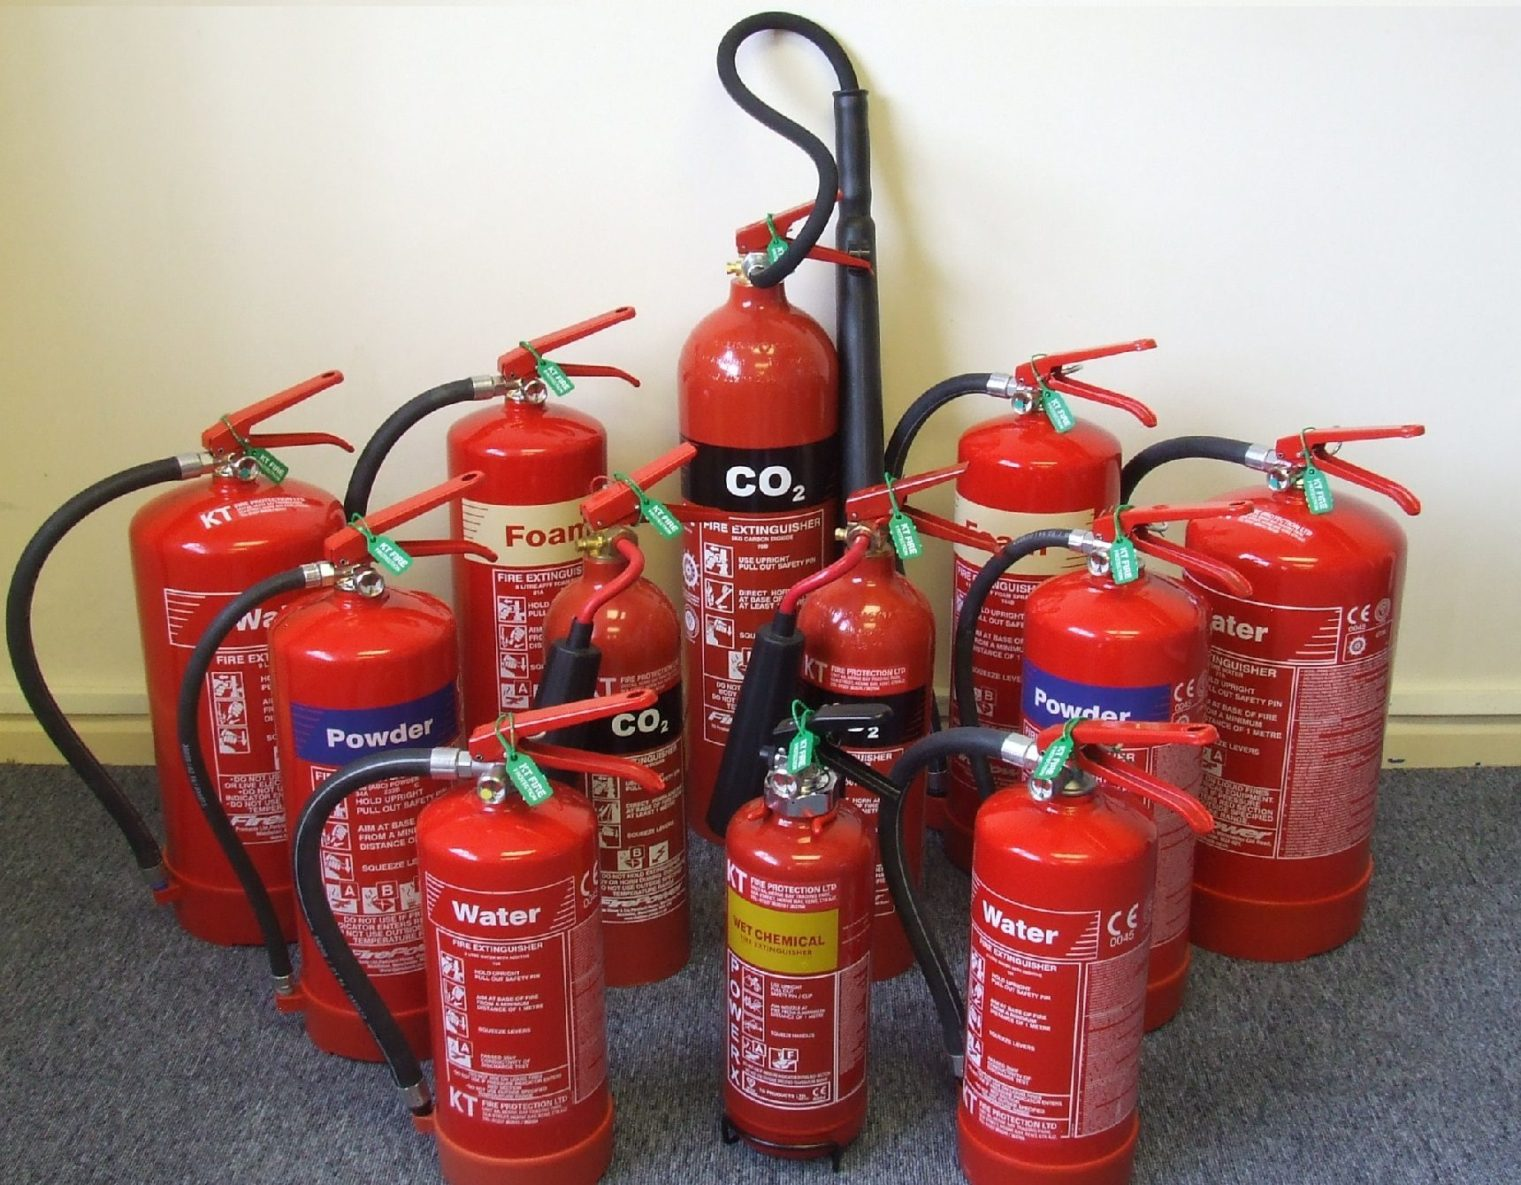 KT Fire Protection Fire Extinguishers